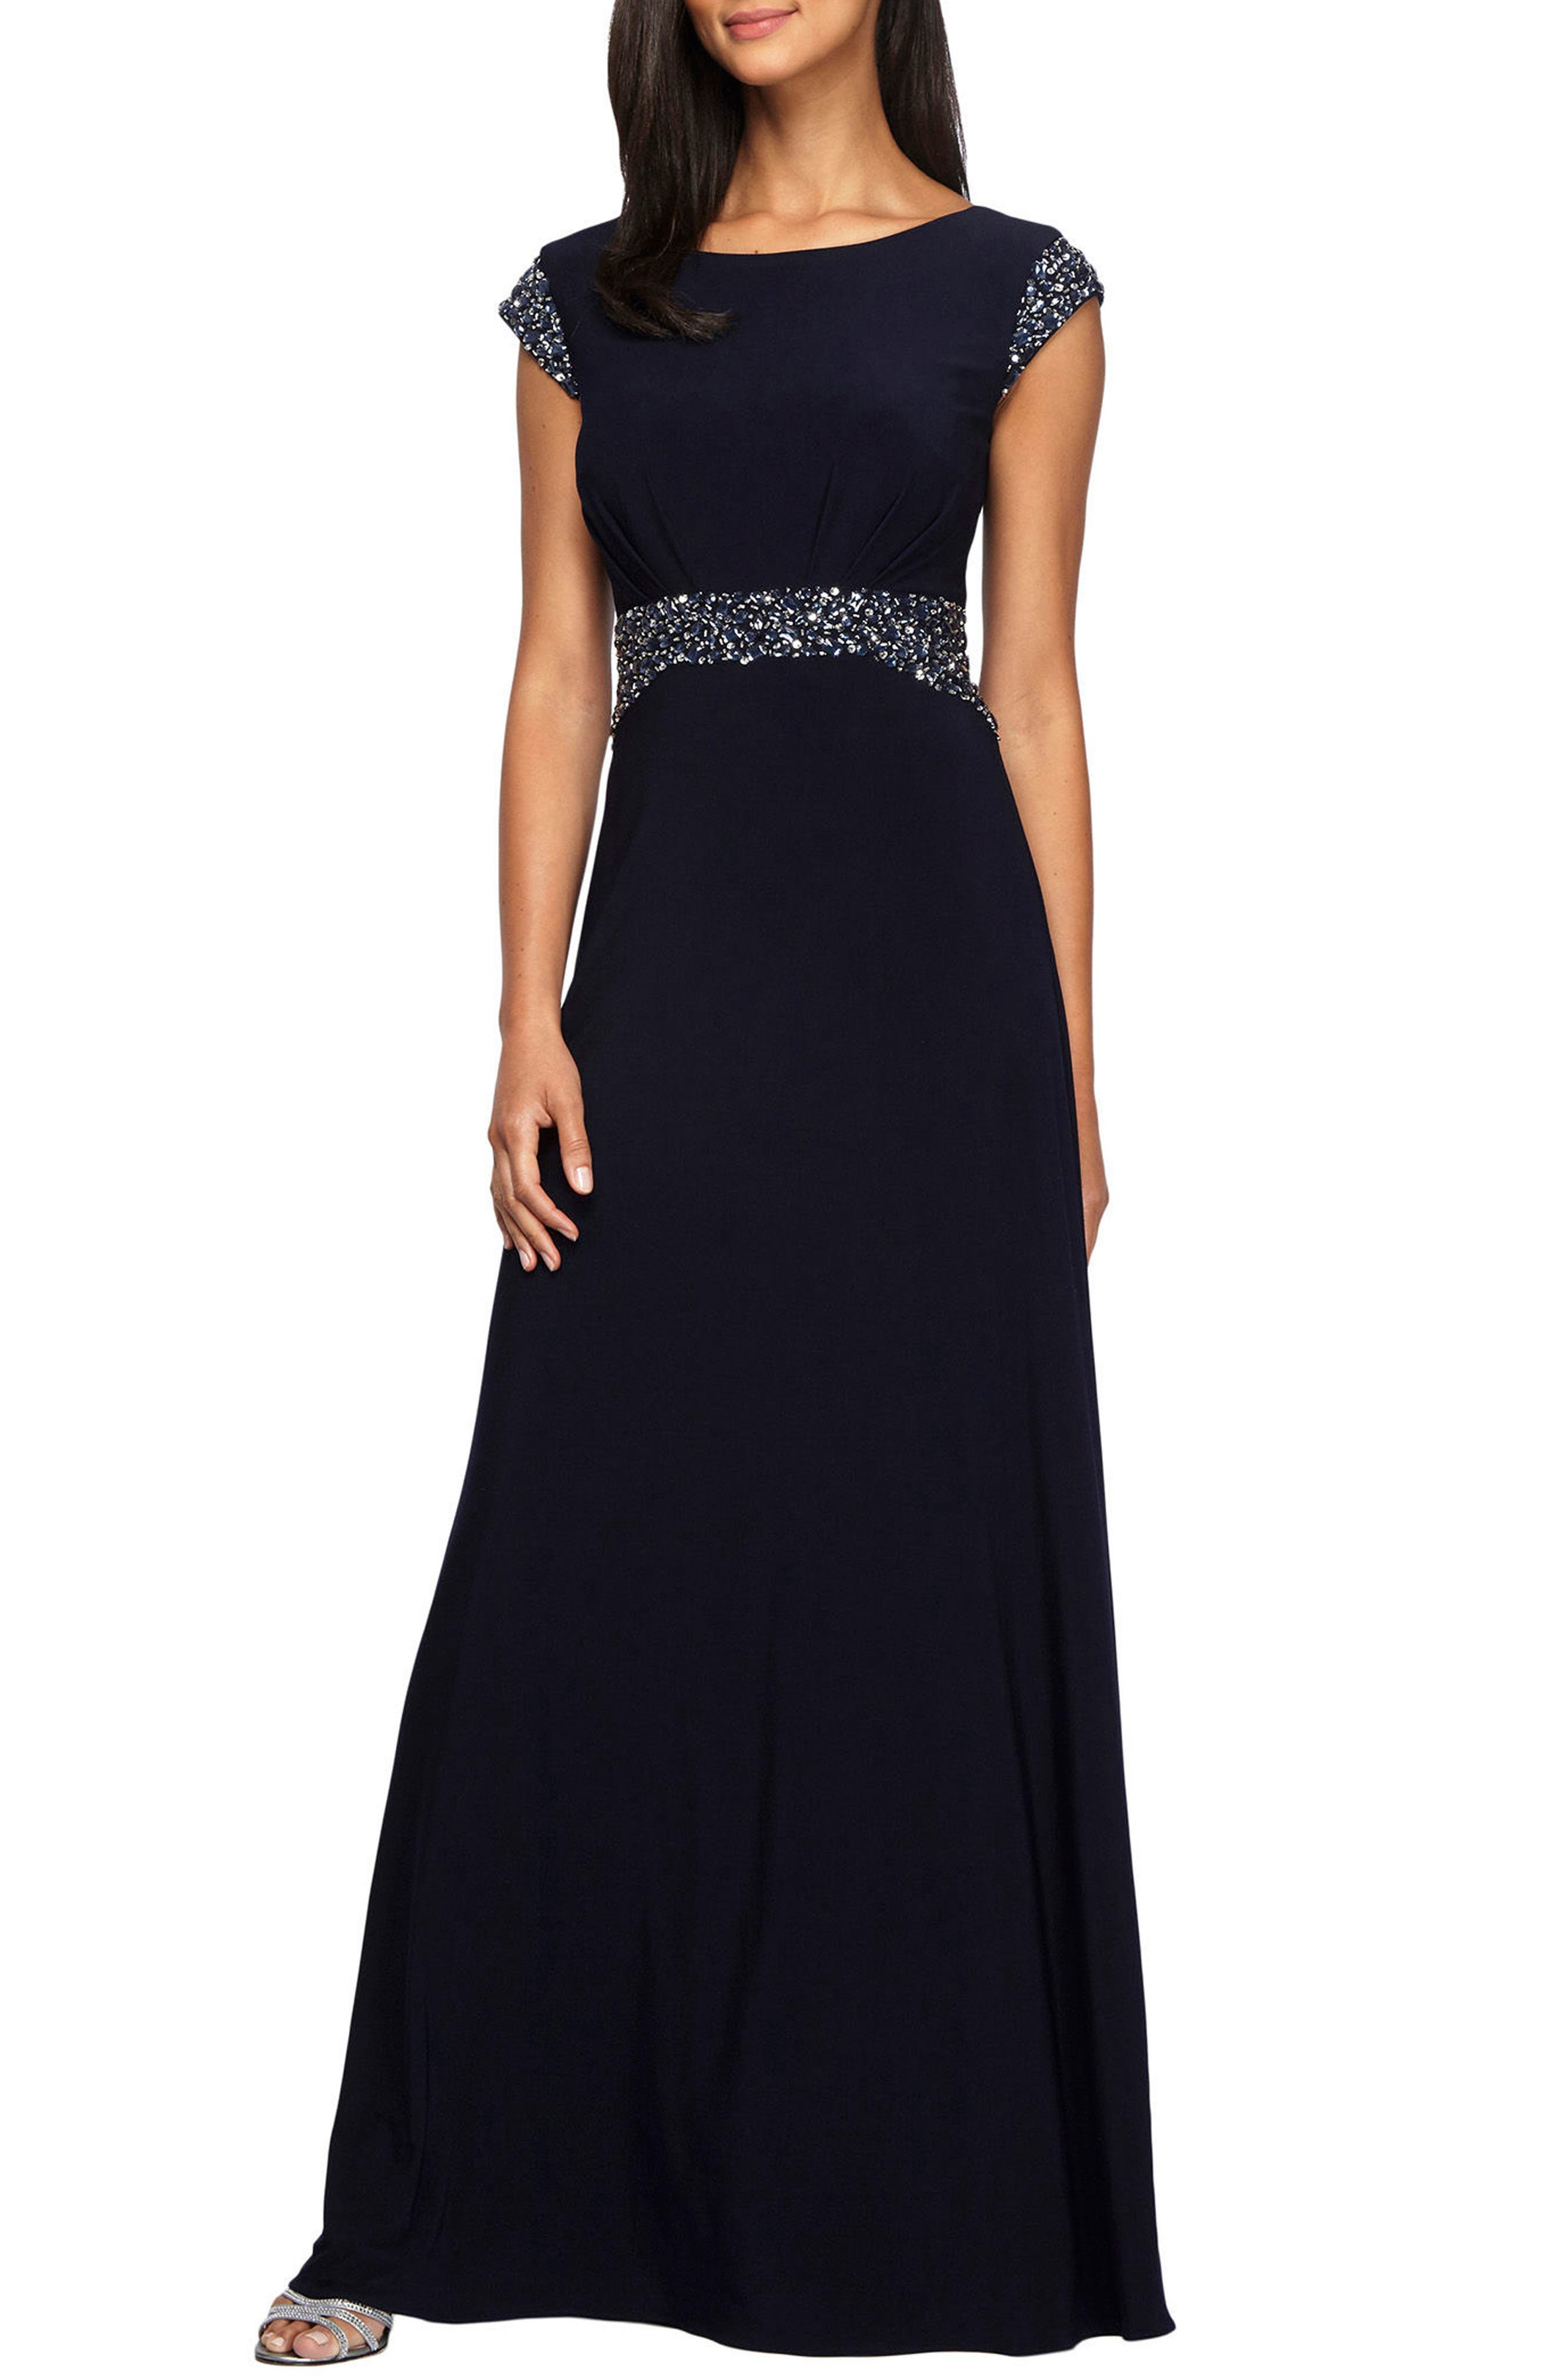 Main Image - Alex Evenings Embellished Cap Sleeve A-Line Gown